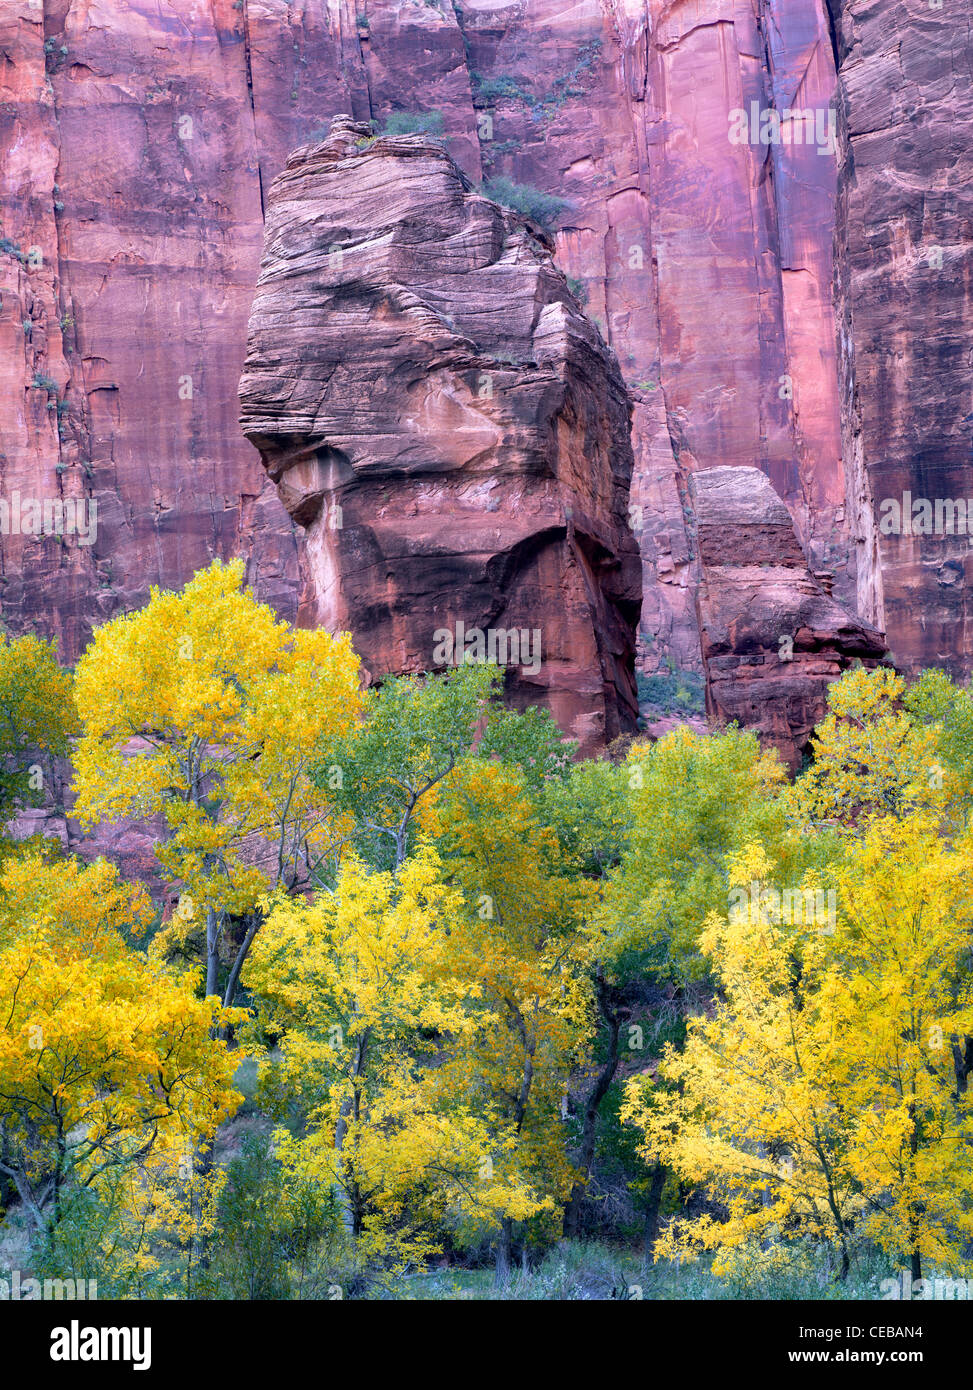 The Pulpit and fall color at the Temple of Sinawava. Zion National Park, Utah - Stock Image